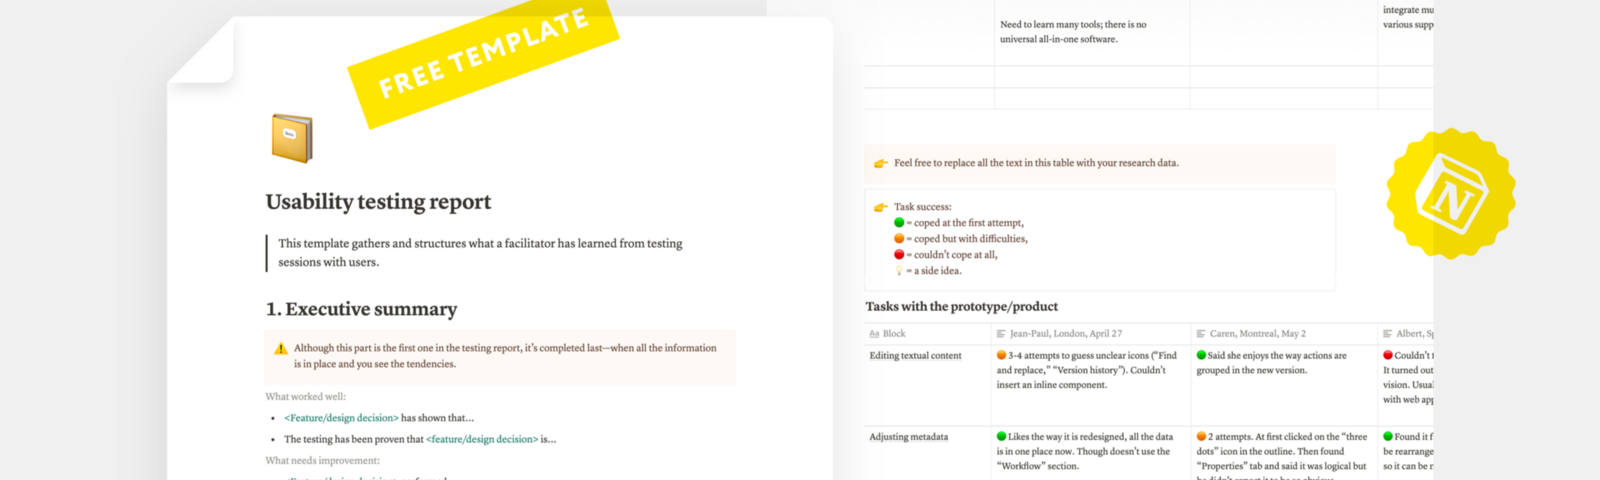 Screenshots from the web app Notion that show a template of the report after usability testing